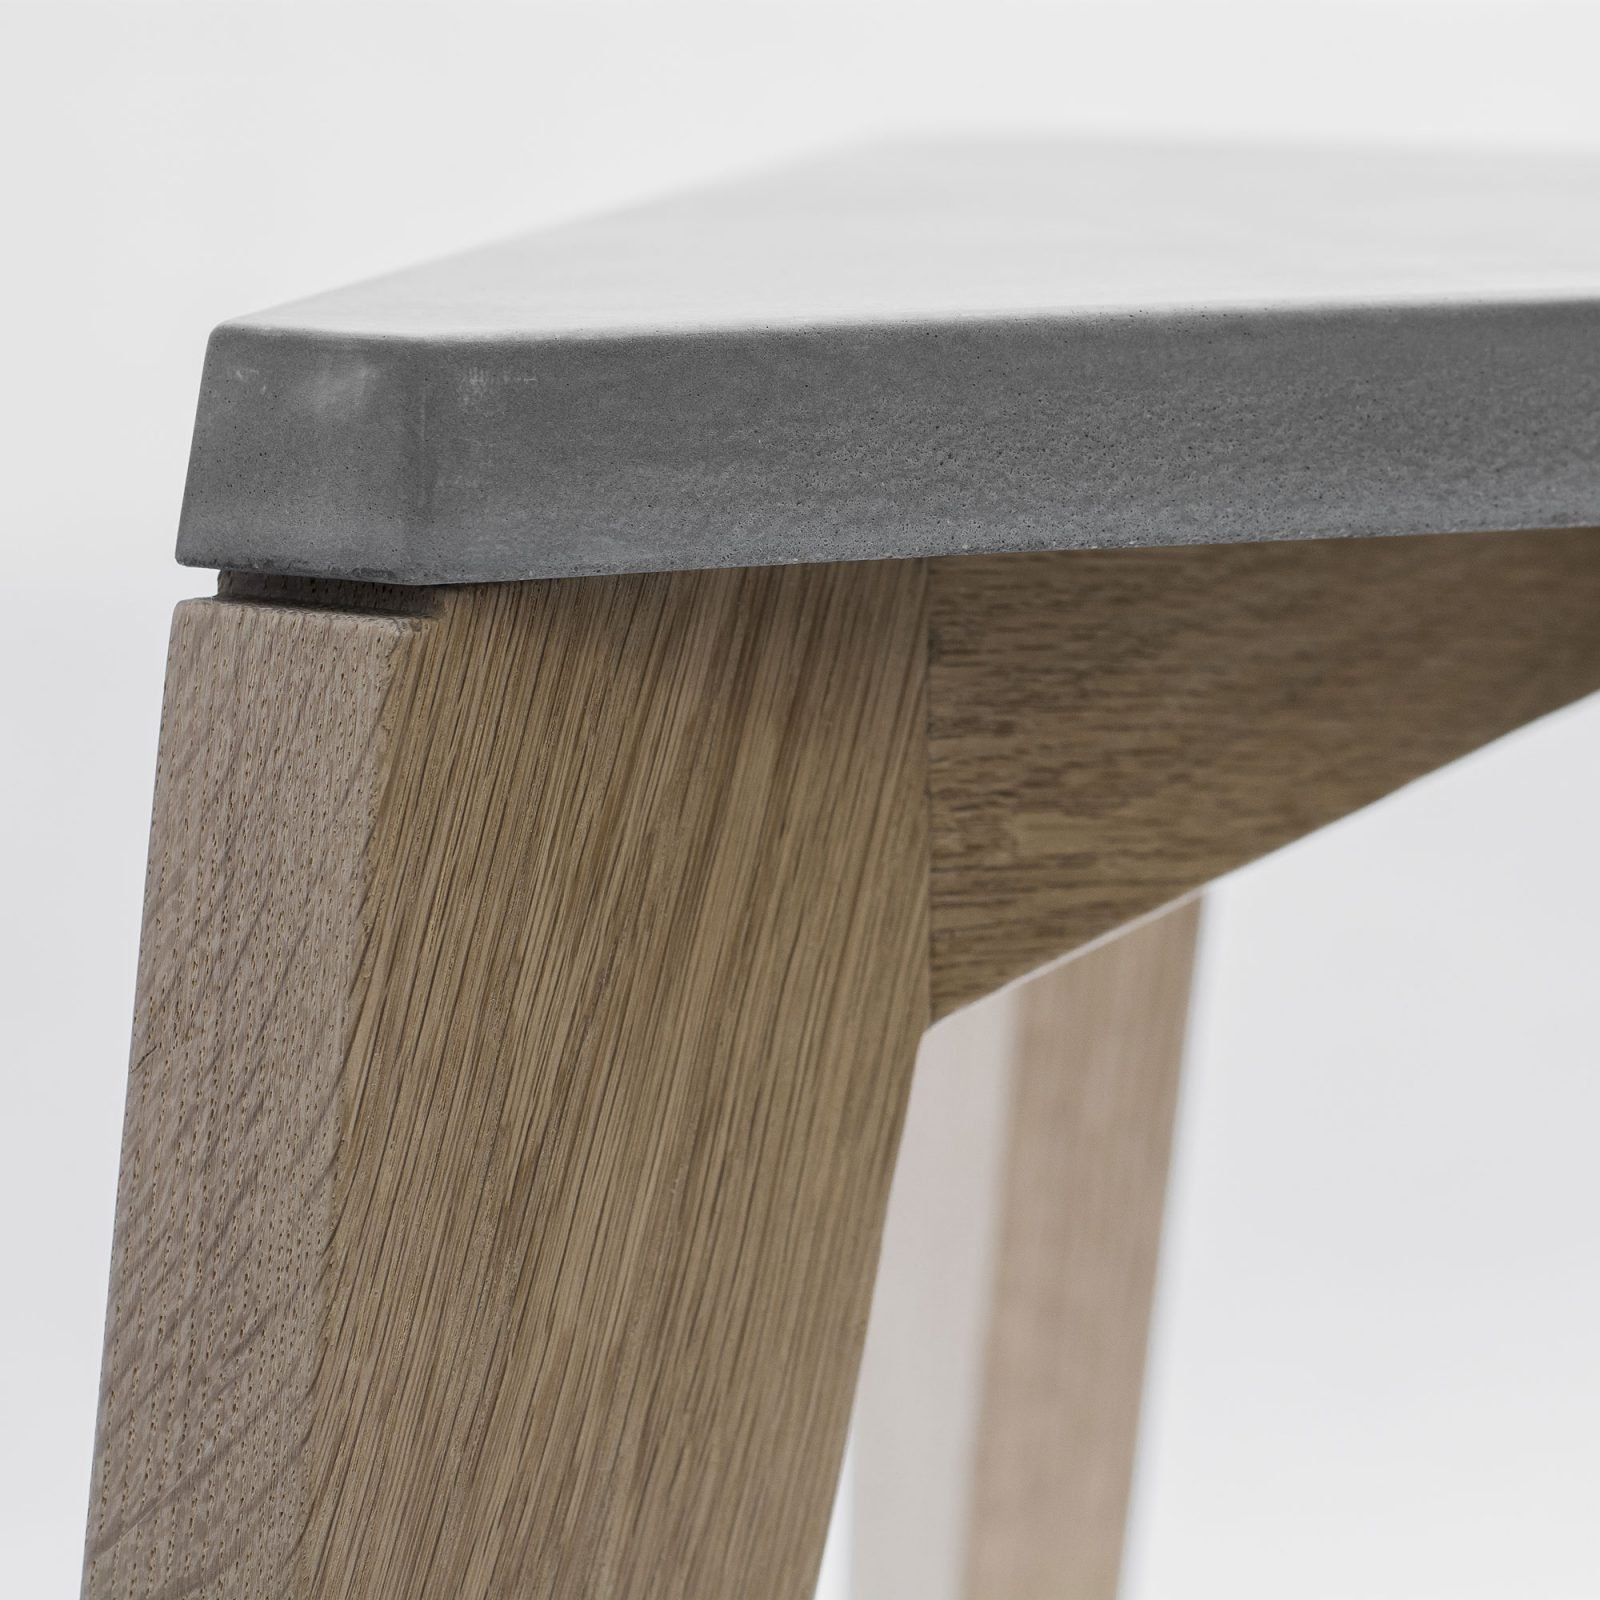 maple-wood-and-concrete-stool-2